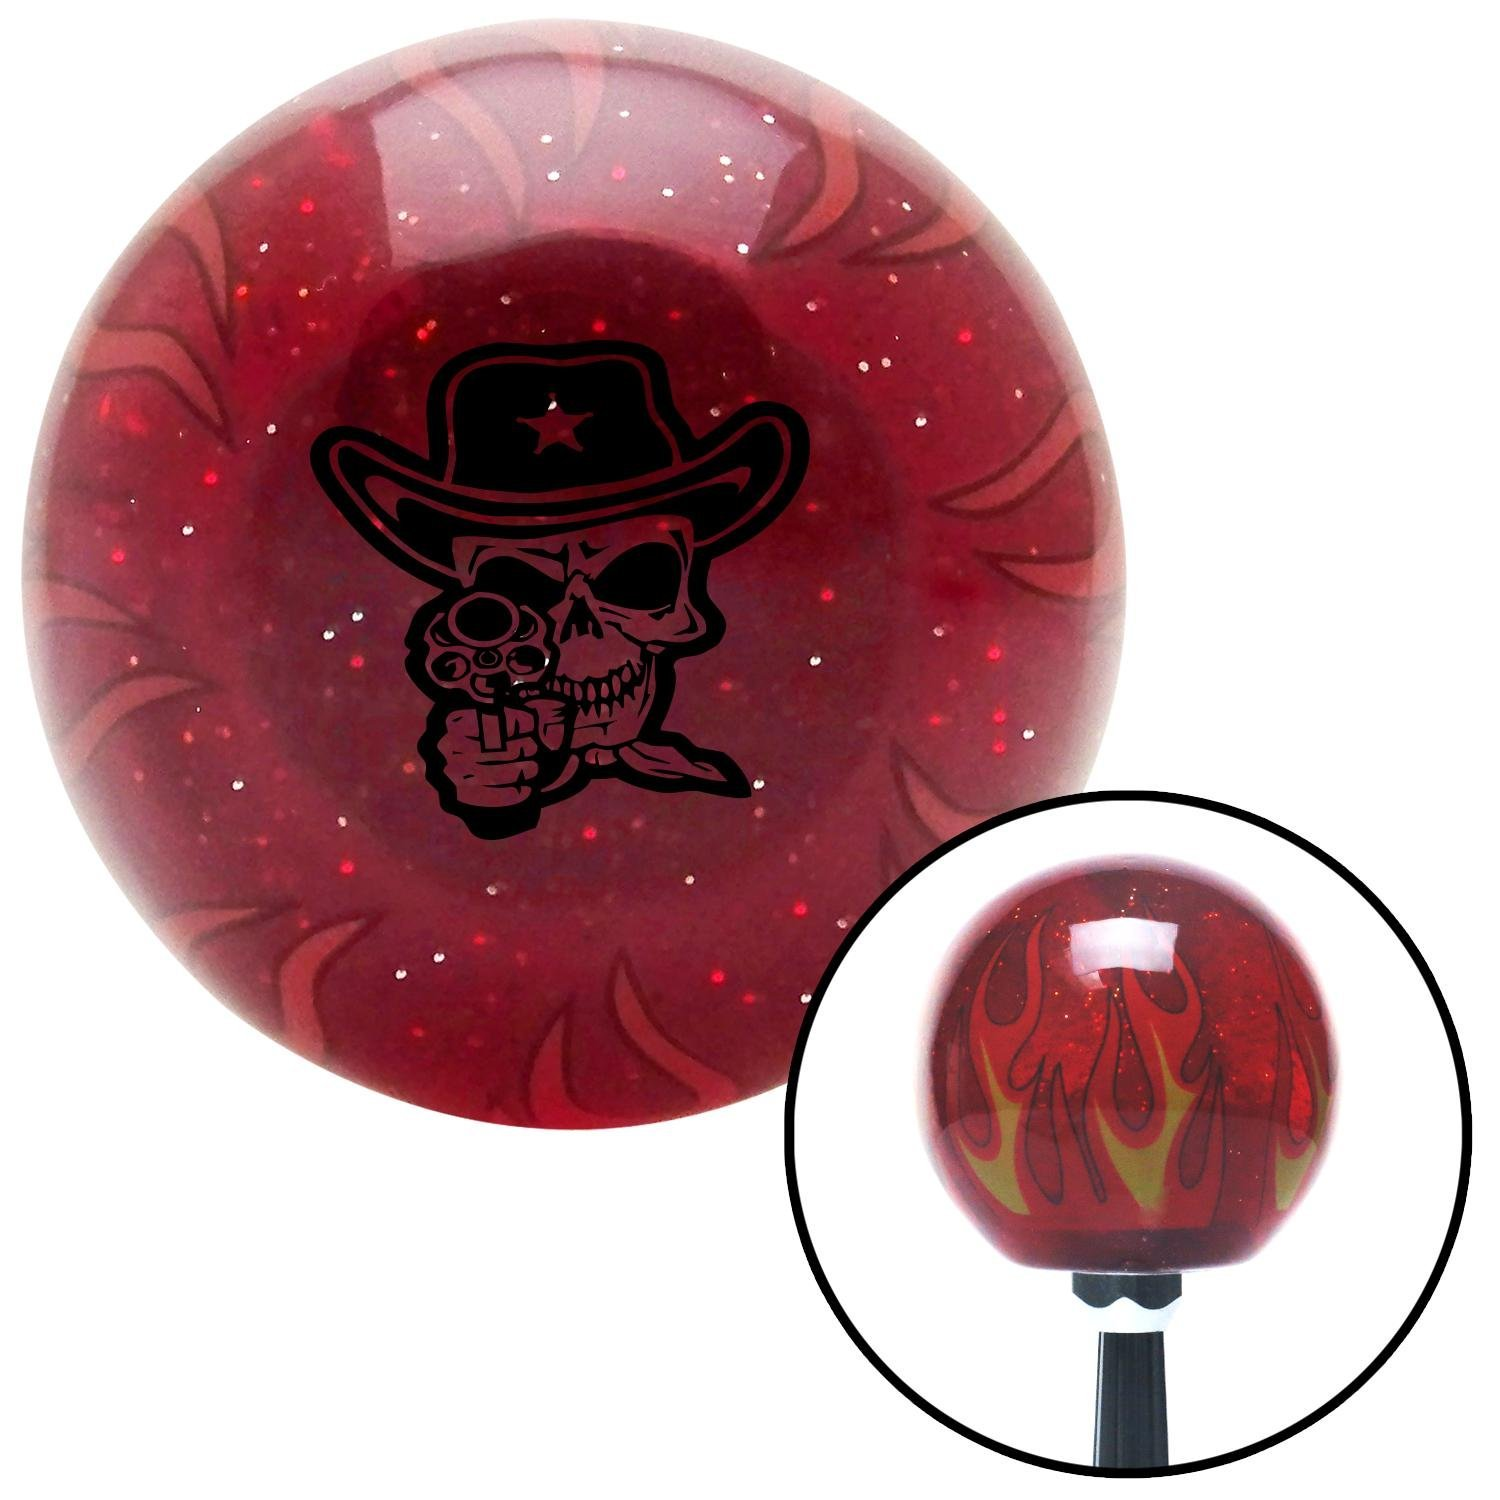 Black Cowboy Skull American Shifter 243524 Red Flame Metal Flake Shift Knob with M16 x 1.5 Insert